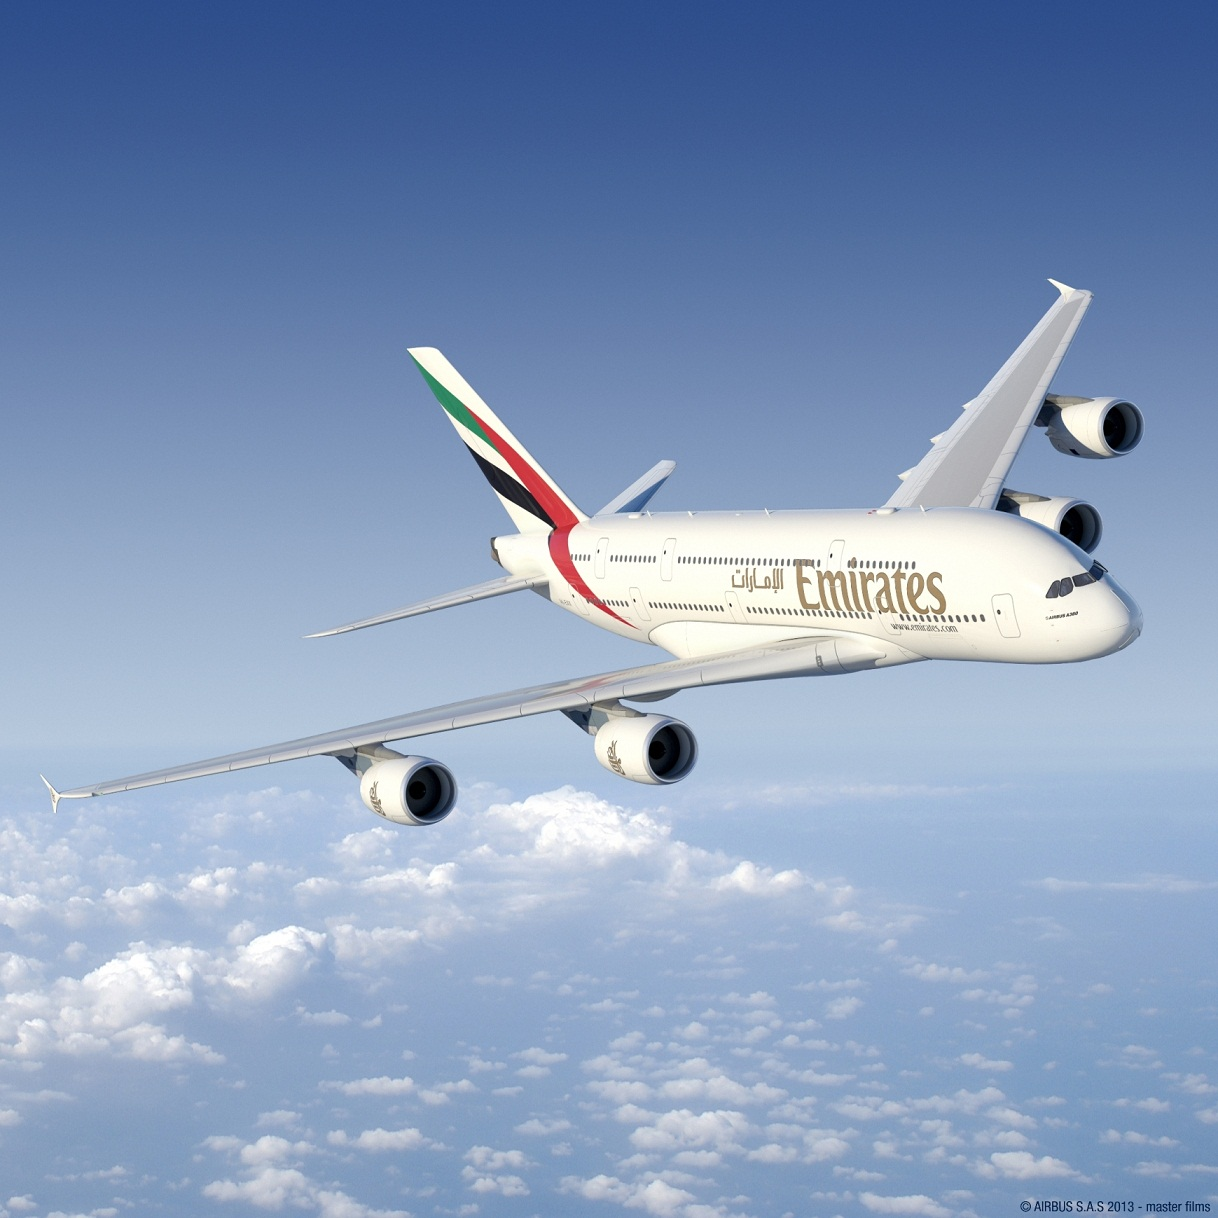 https://highend-traveller.com/emirates-extends-baggage-allowance-to-dubai-shopping-festival-shoppers/